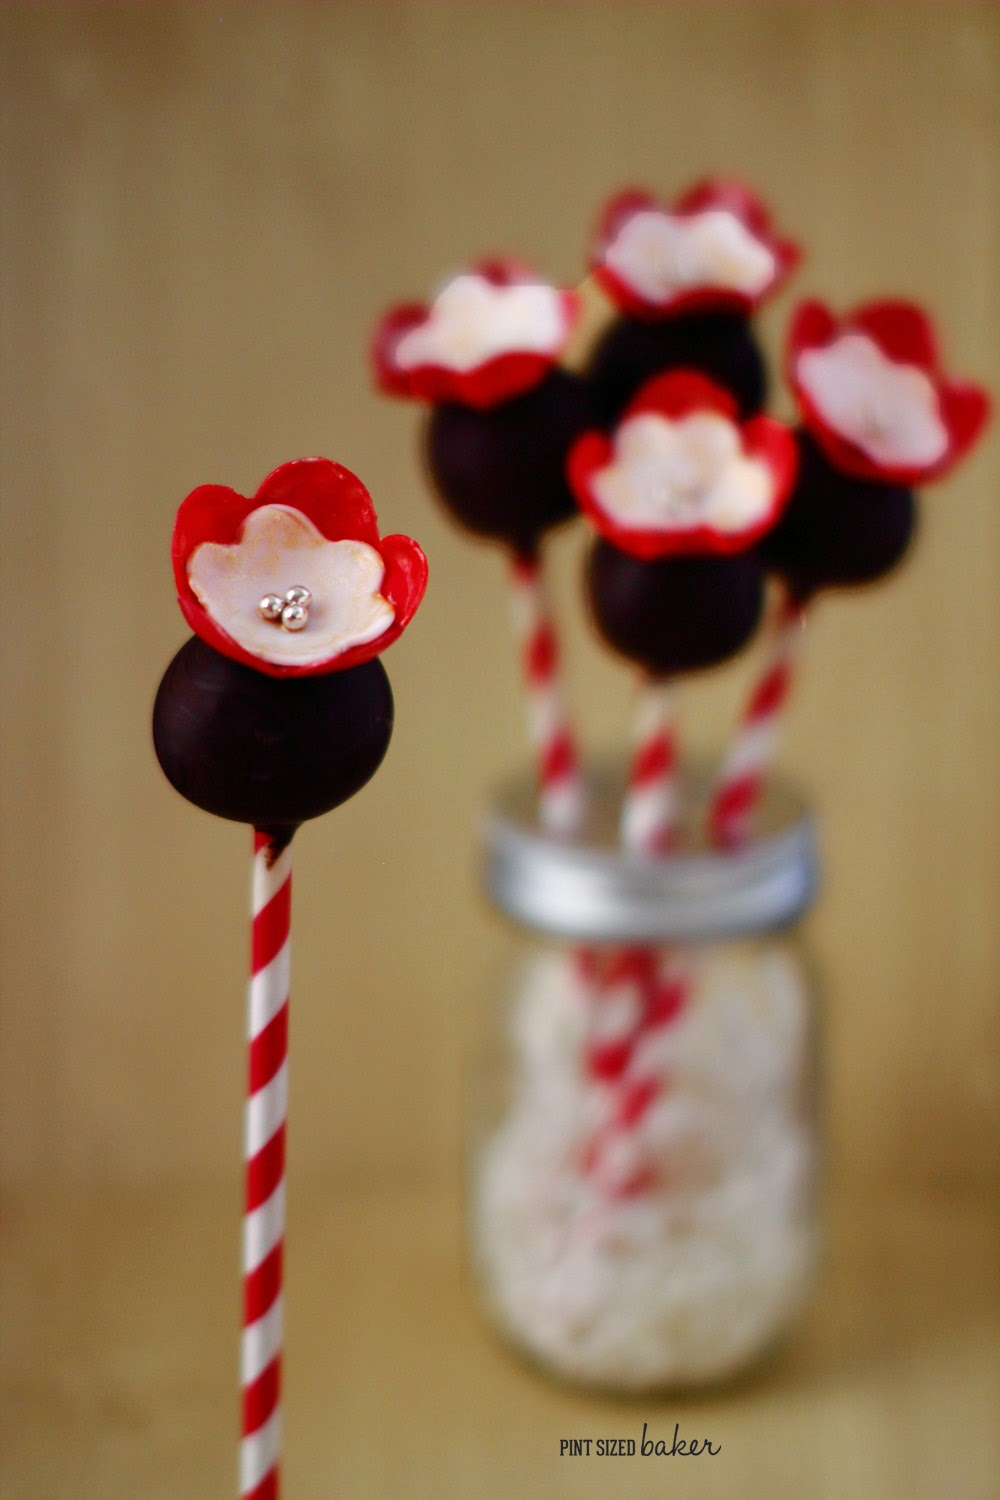 Perfect Fondant Flowers are easy to make. They make the most basic cake pops so much fancier!